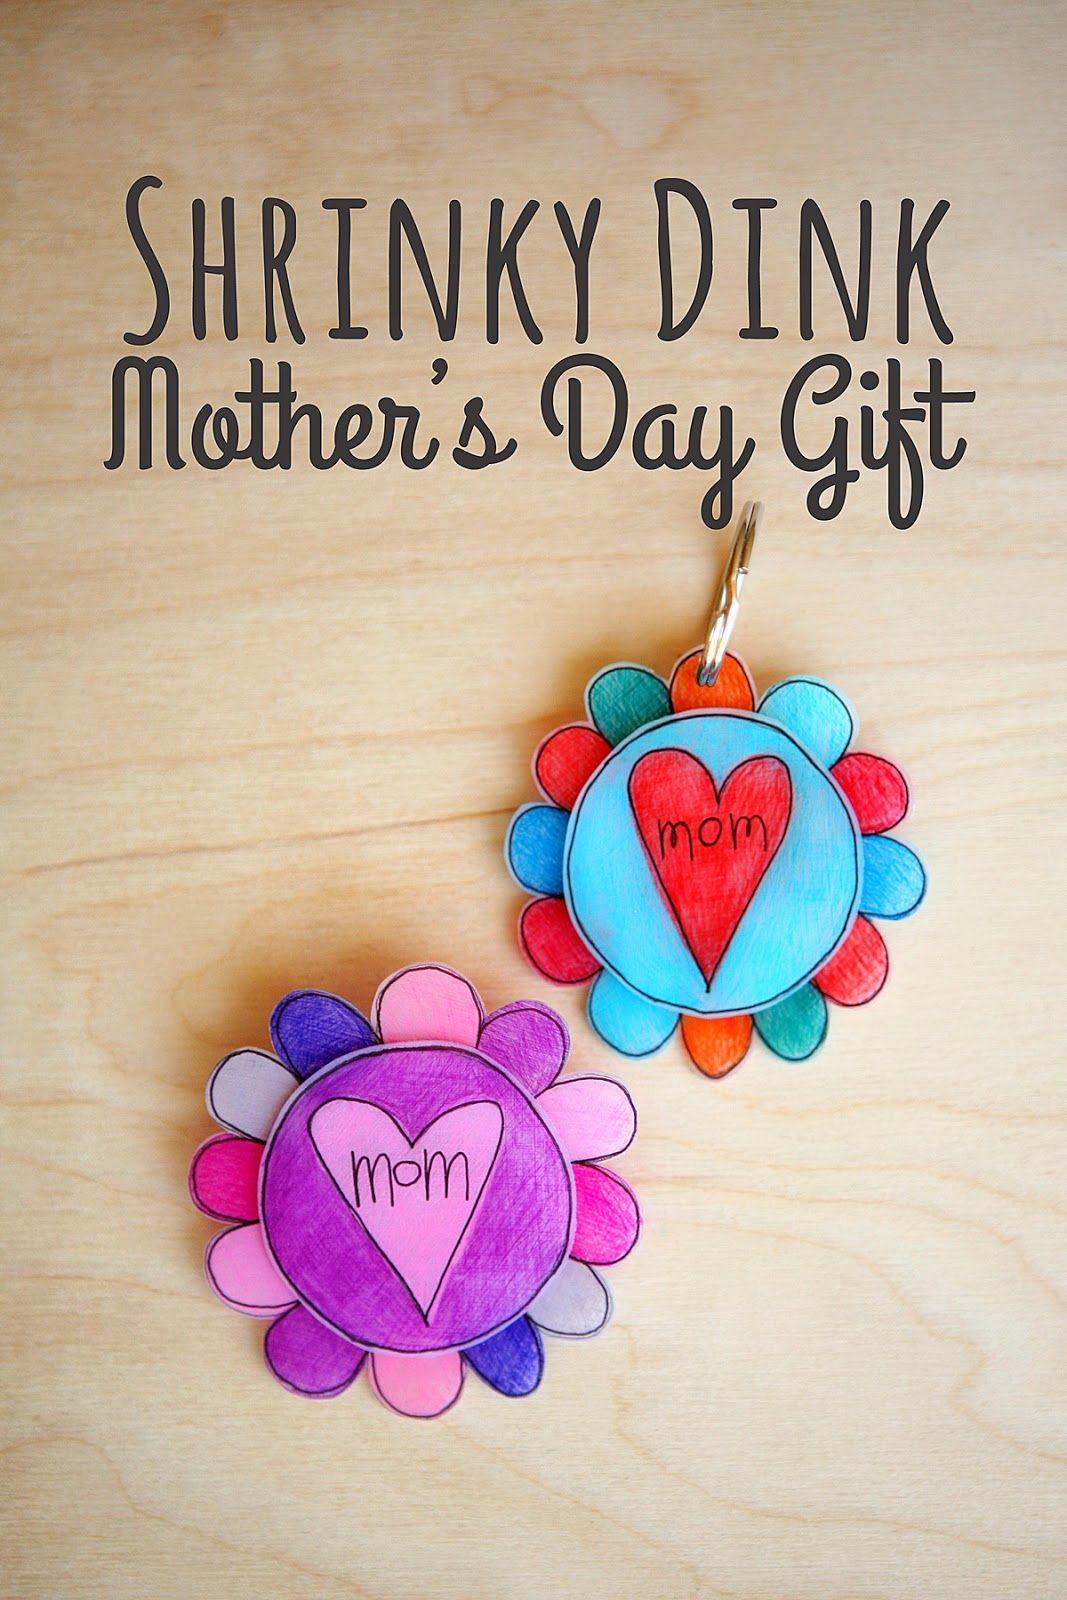 mothers day pro ideas - 736×1103